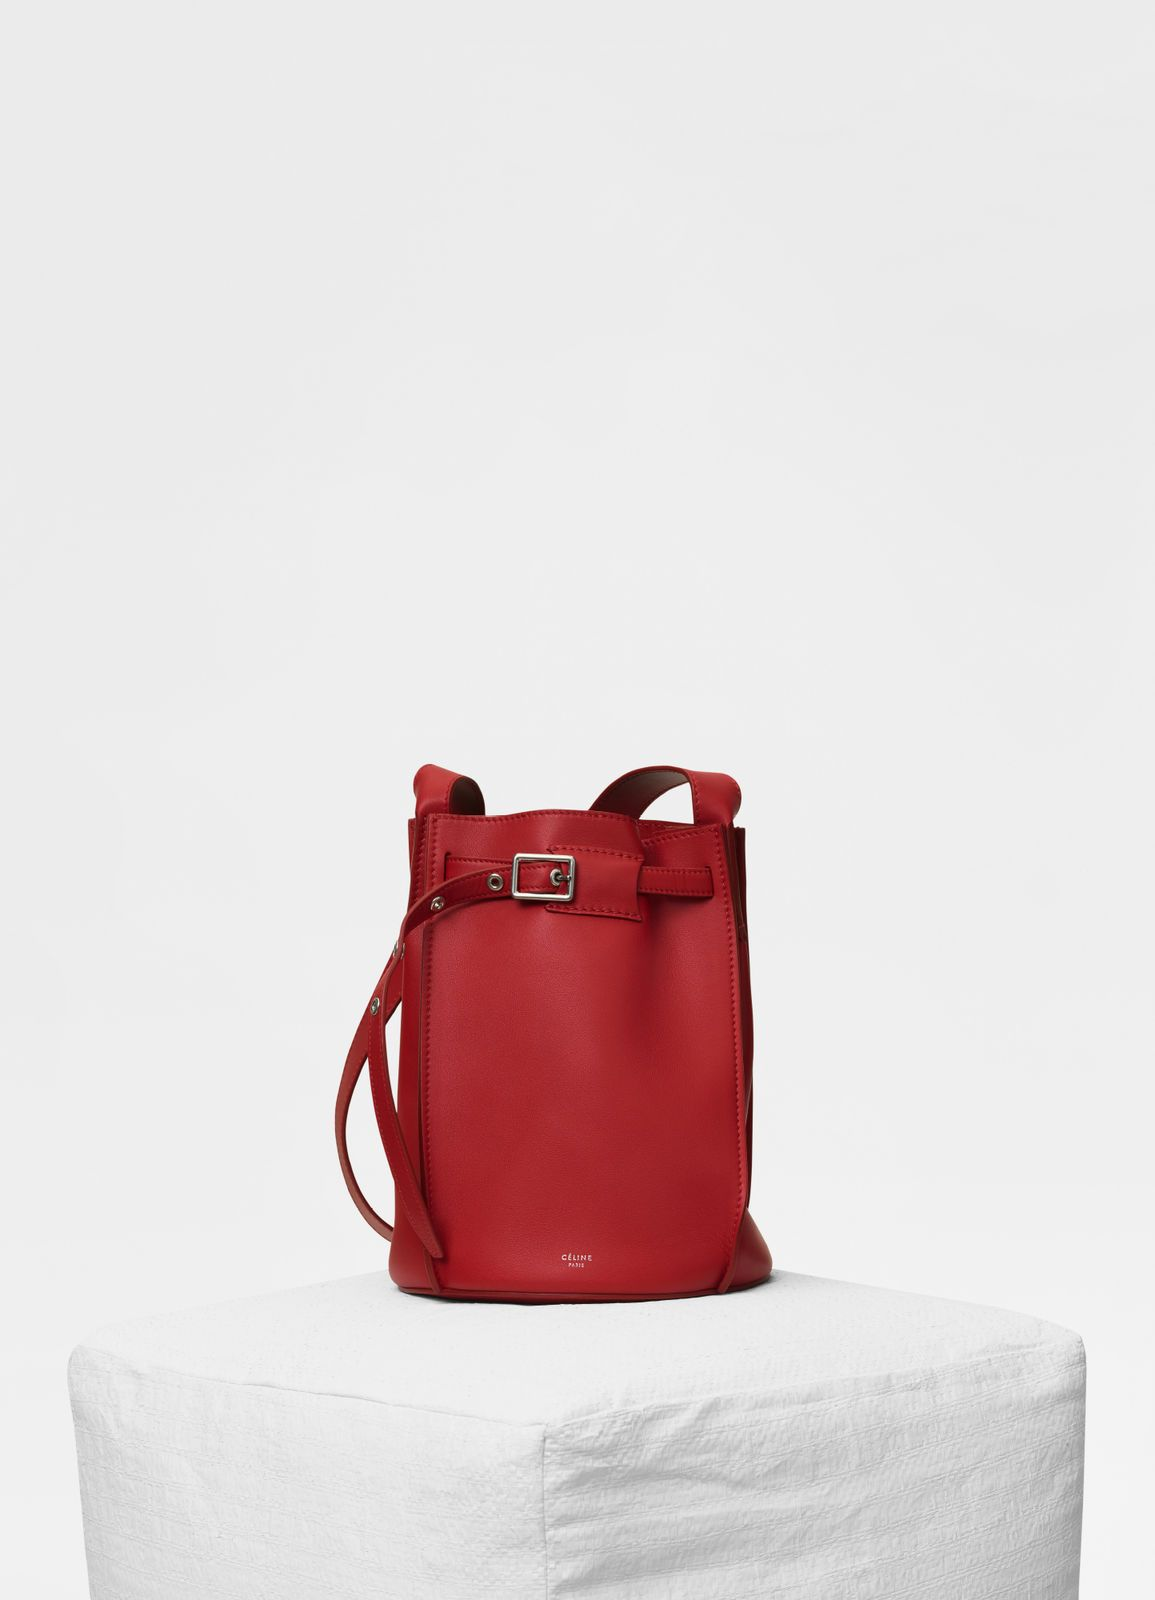 Céline Bag Bucket With Long Strap In Smooth Pop Red Calfskin